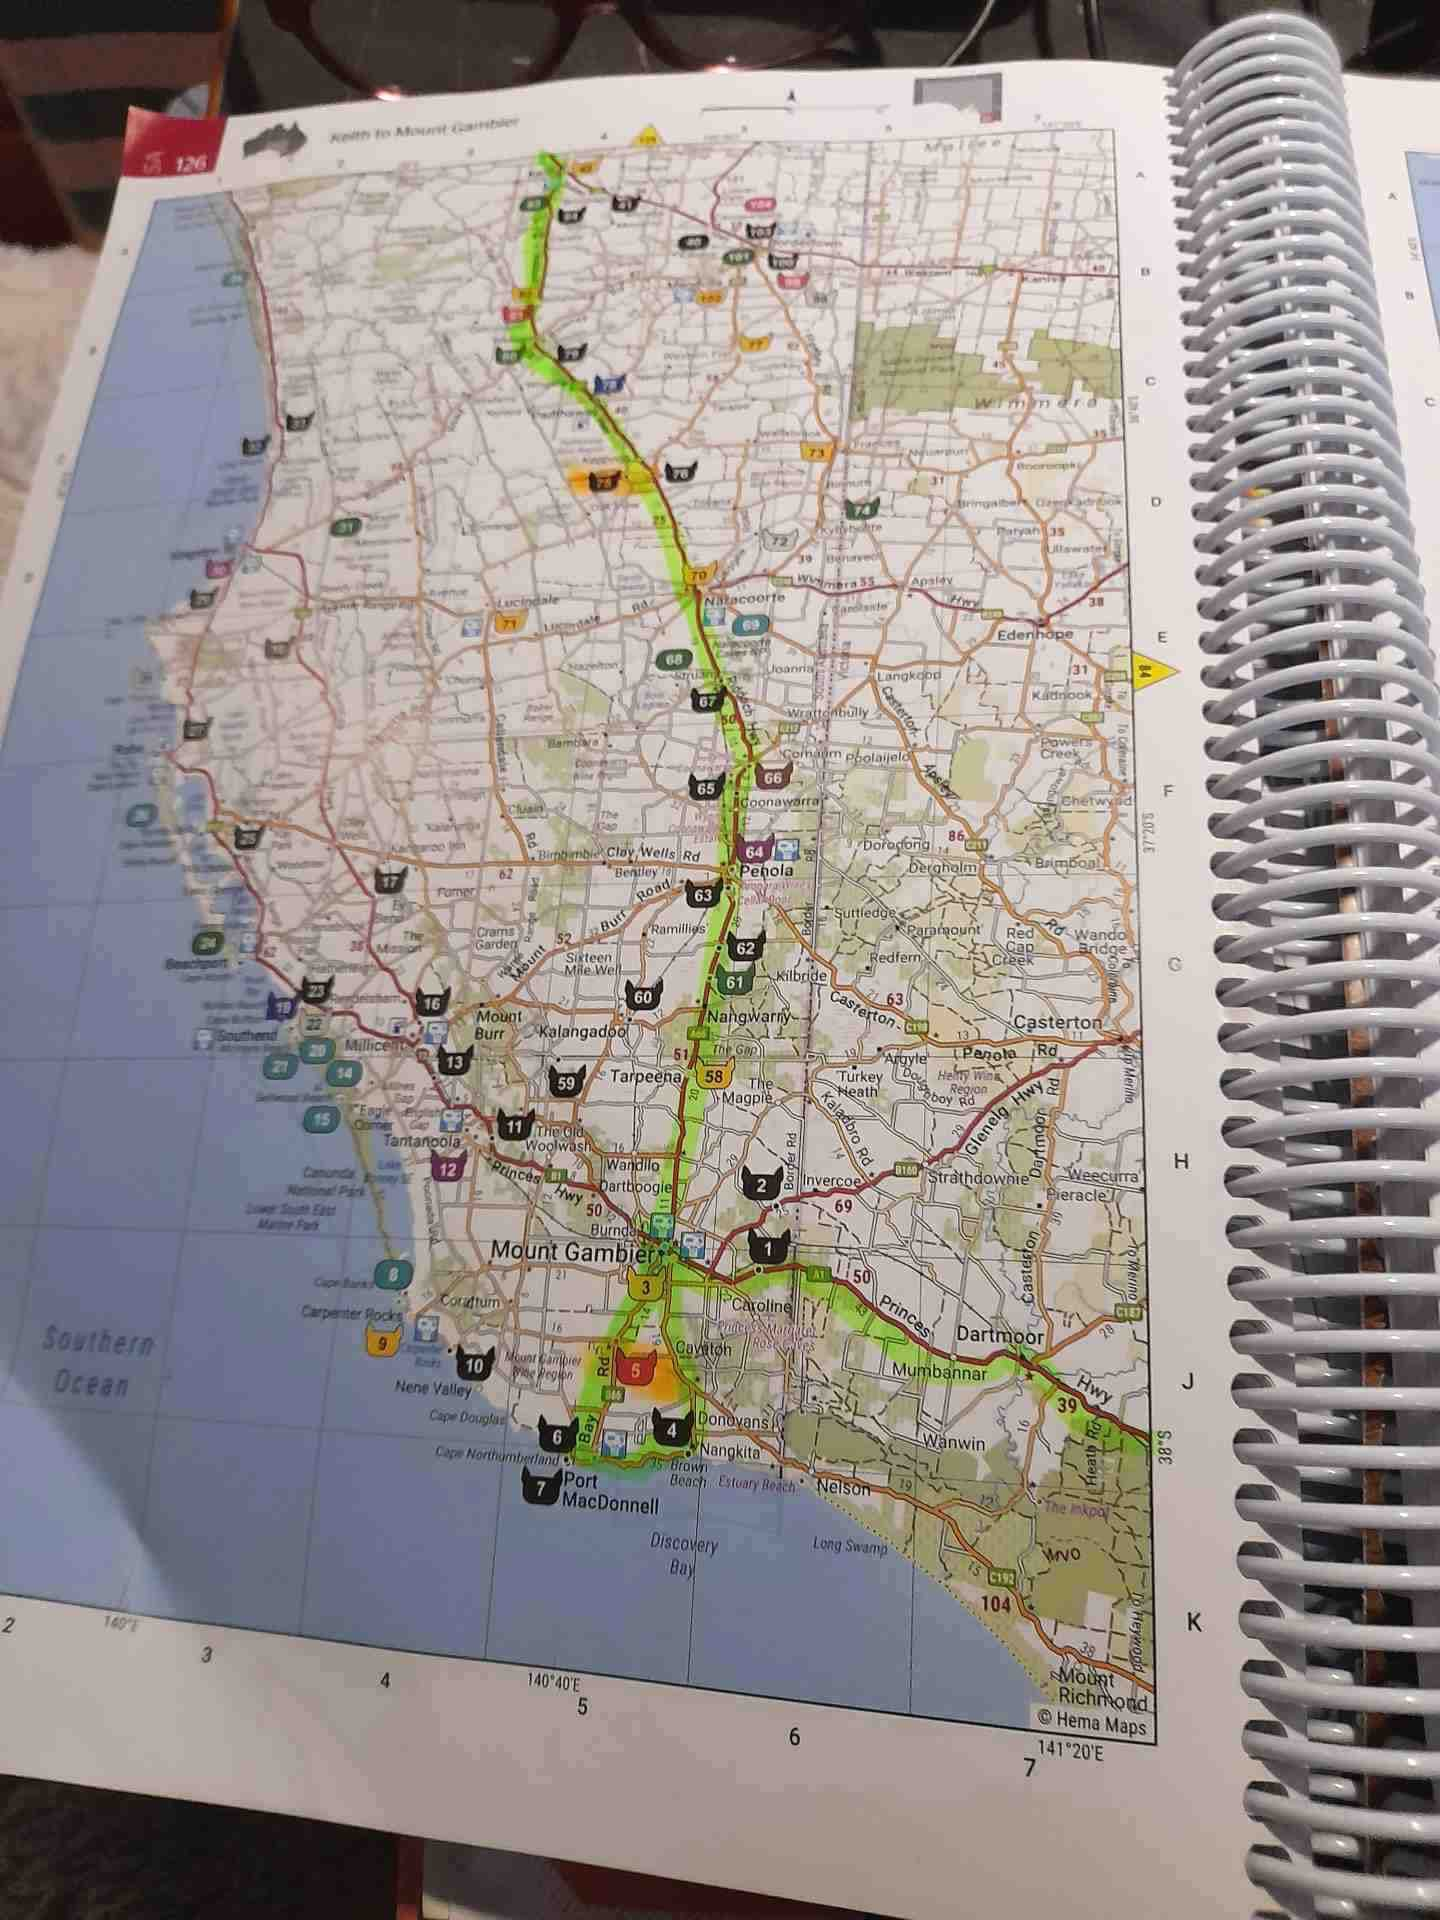 Kaz Nagle's Camps 11 book marked up with her travels